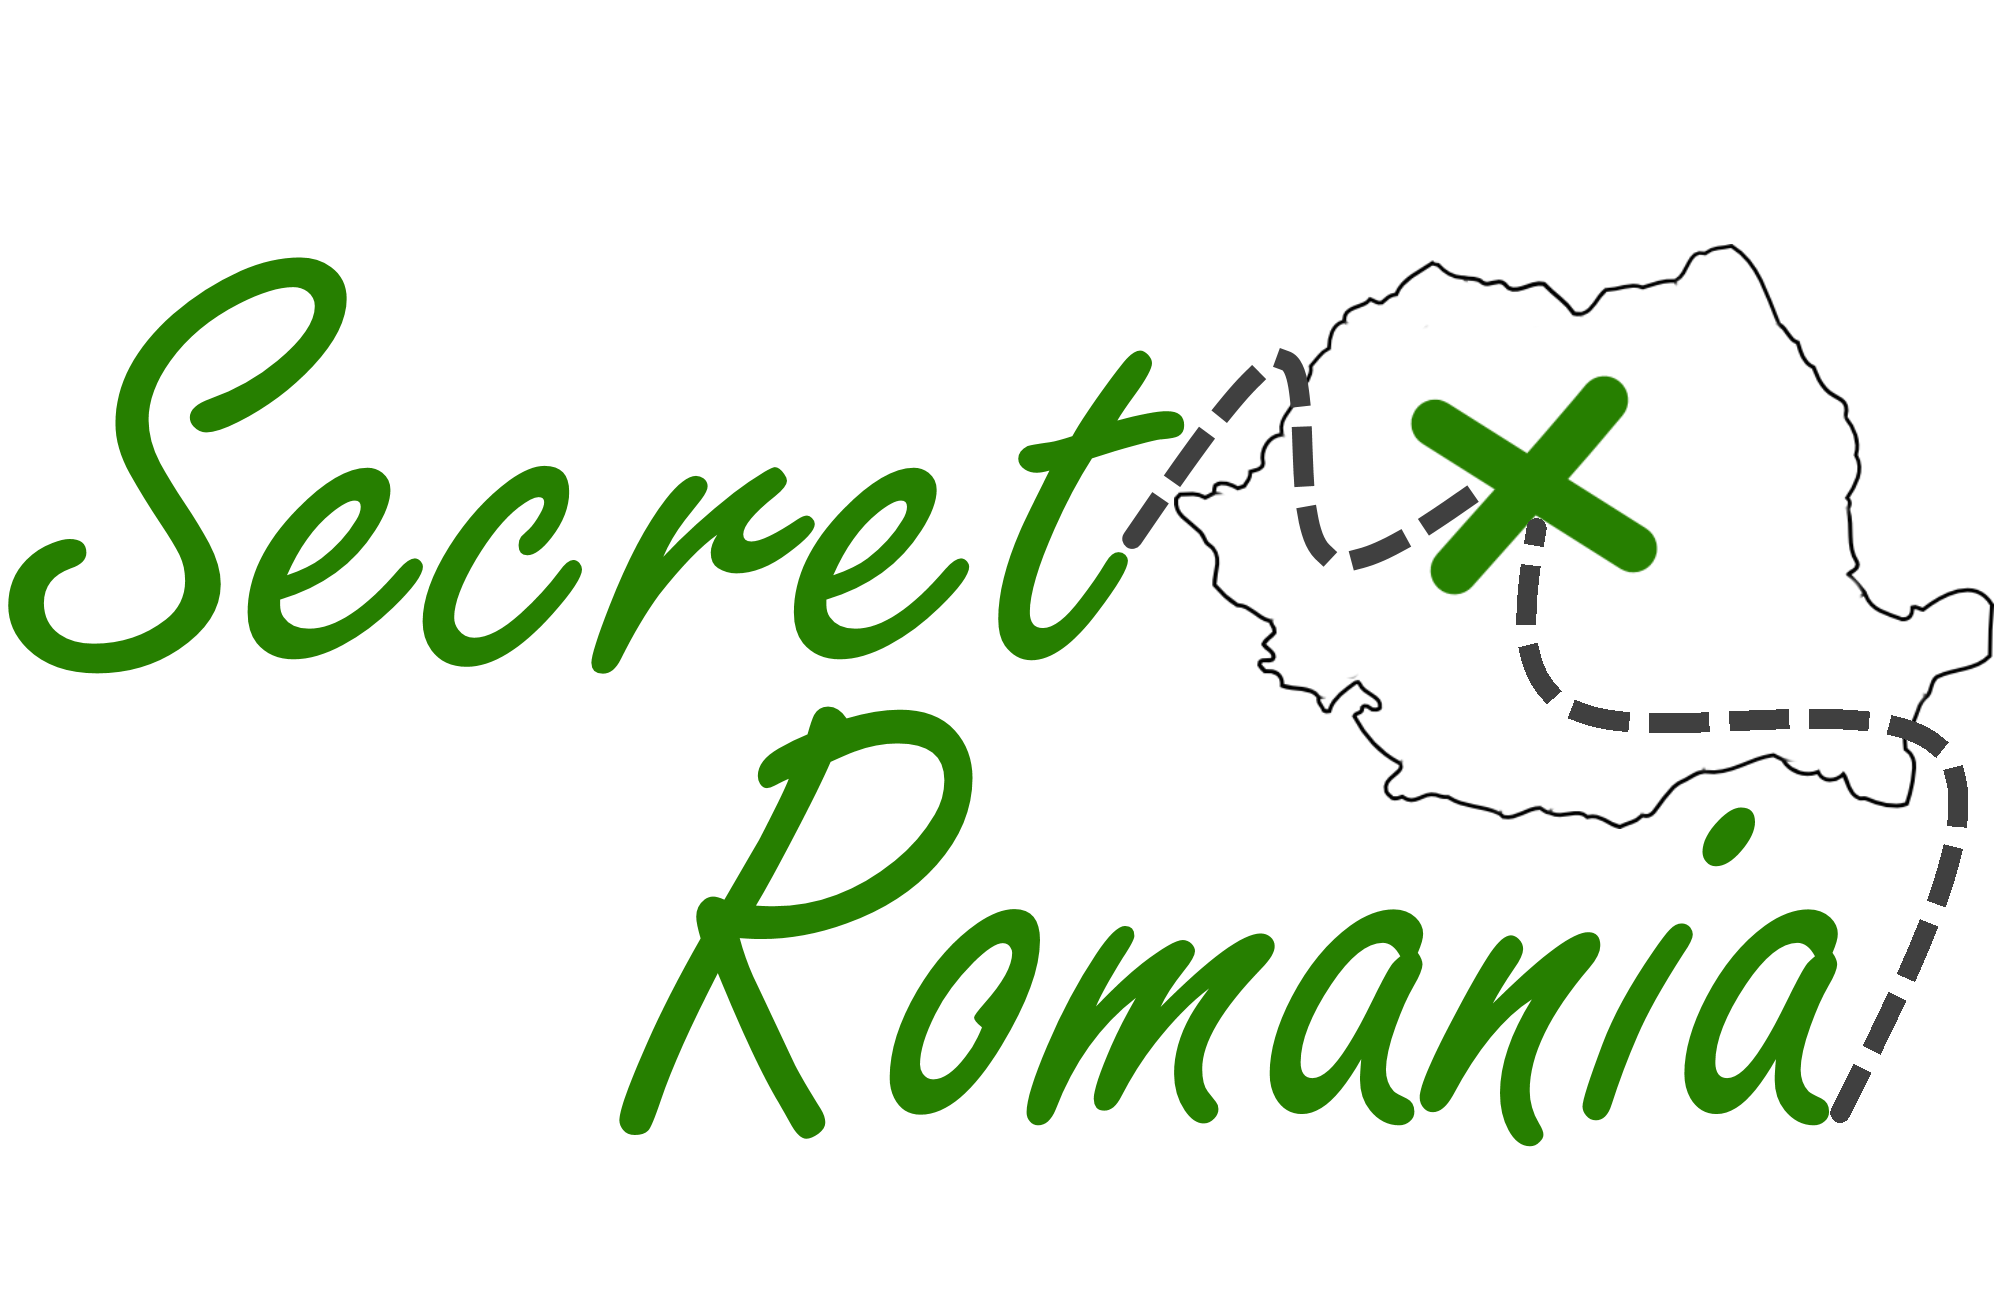 Shop Secret Romania